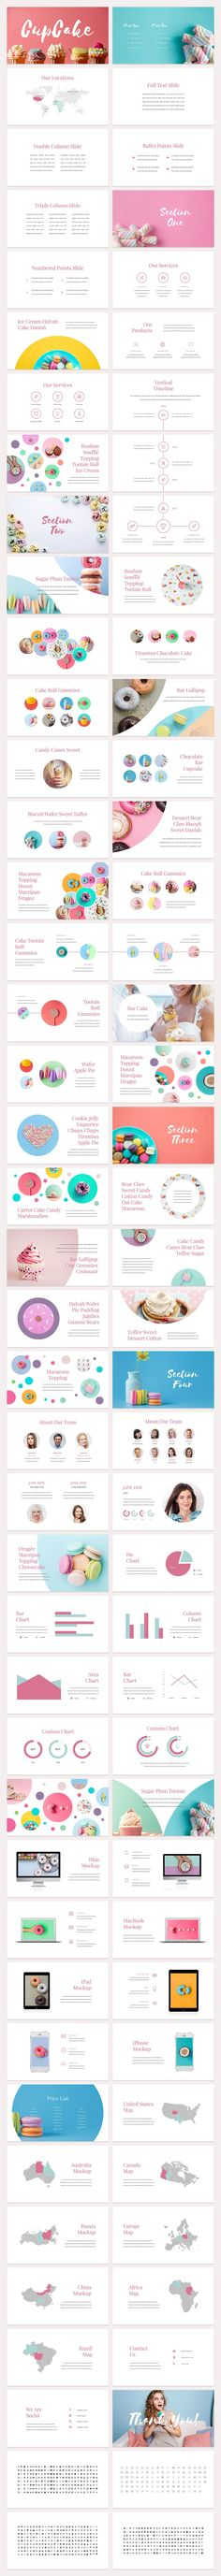 A fun, candy-colored slide deck presentation template / theme featuring pinks and blues. Perfect for bakeries, toy stores, ice cream shops, and other kid focused businesses.